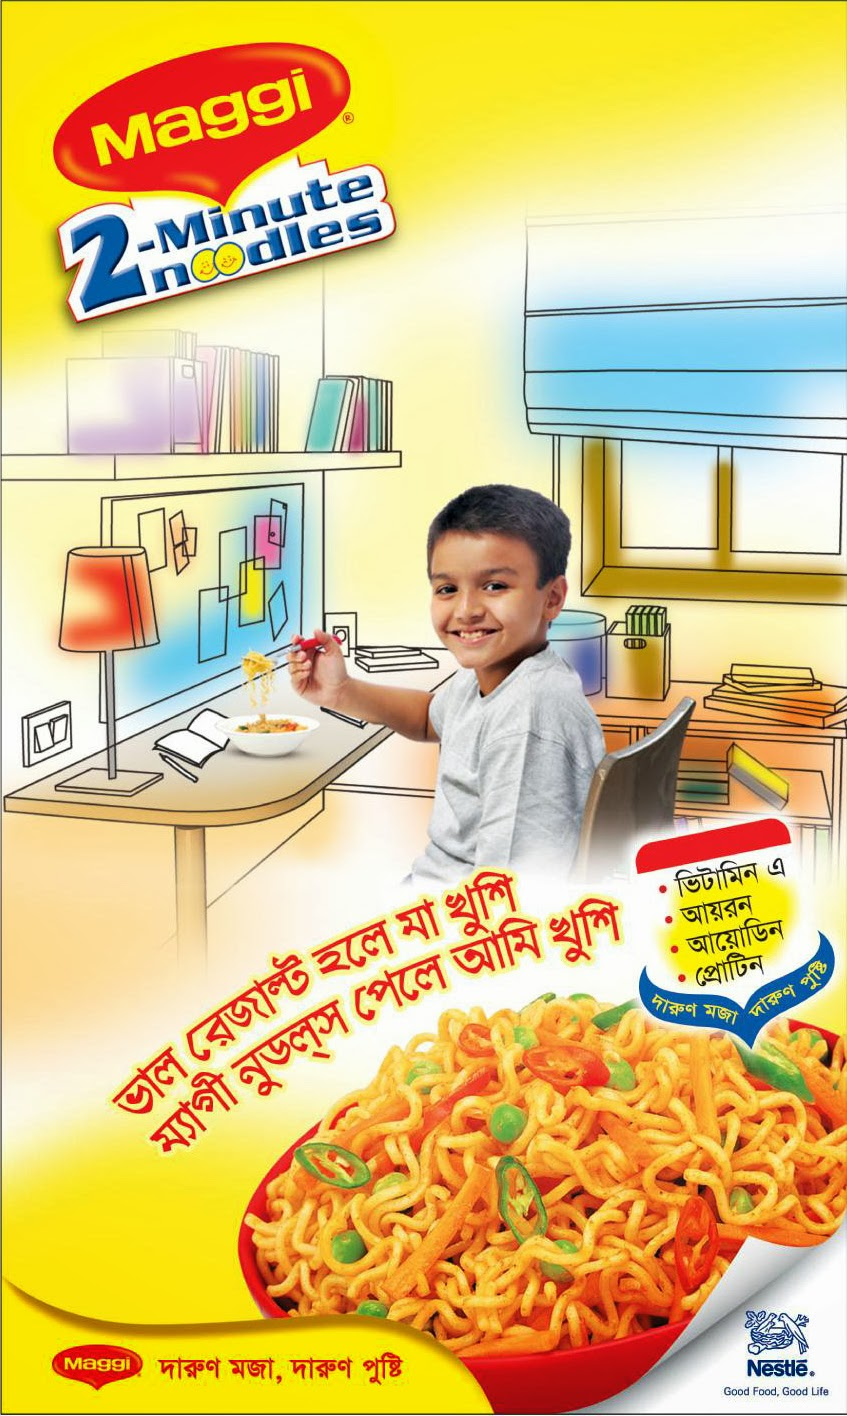 distribution task of maggi noodles in bangladesh Intensive distribution of maggi as a brand was seen in more about maggi brand in india maggi noodles swot relationship between job satisfaction and job.